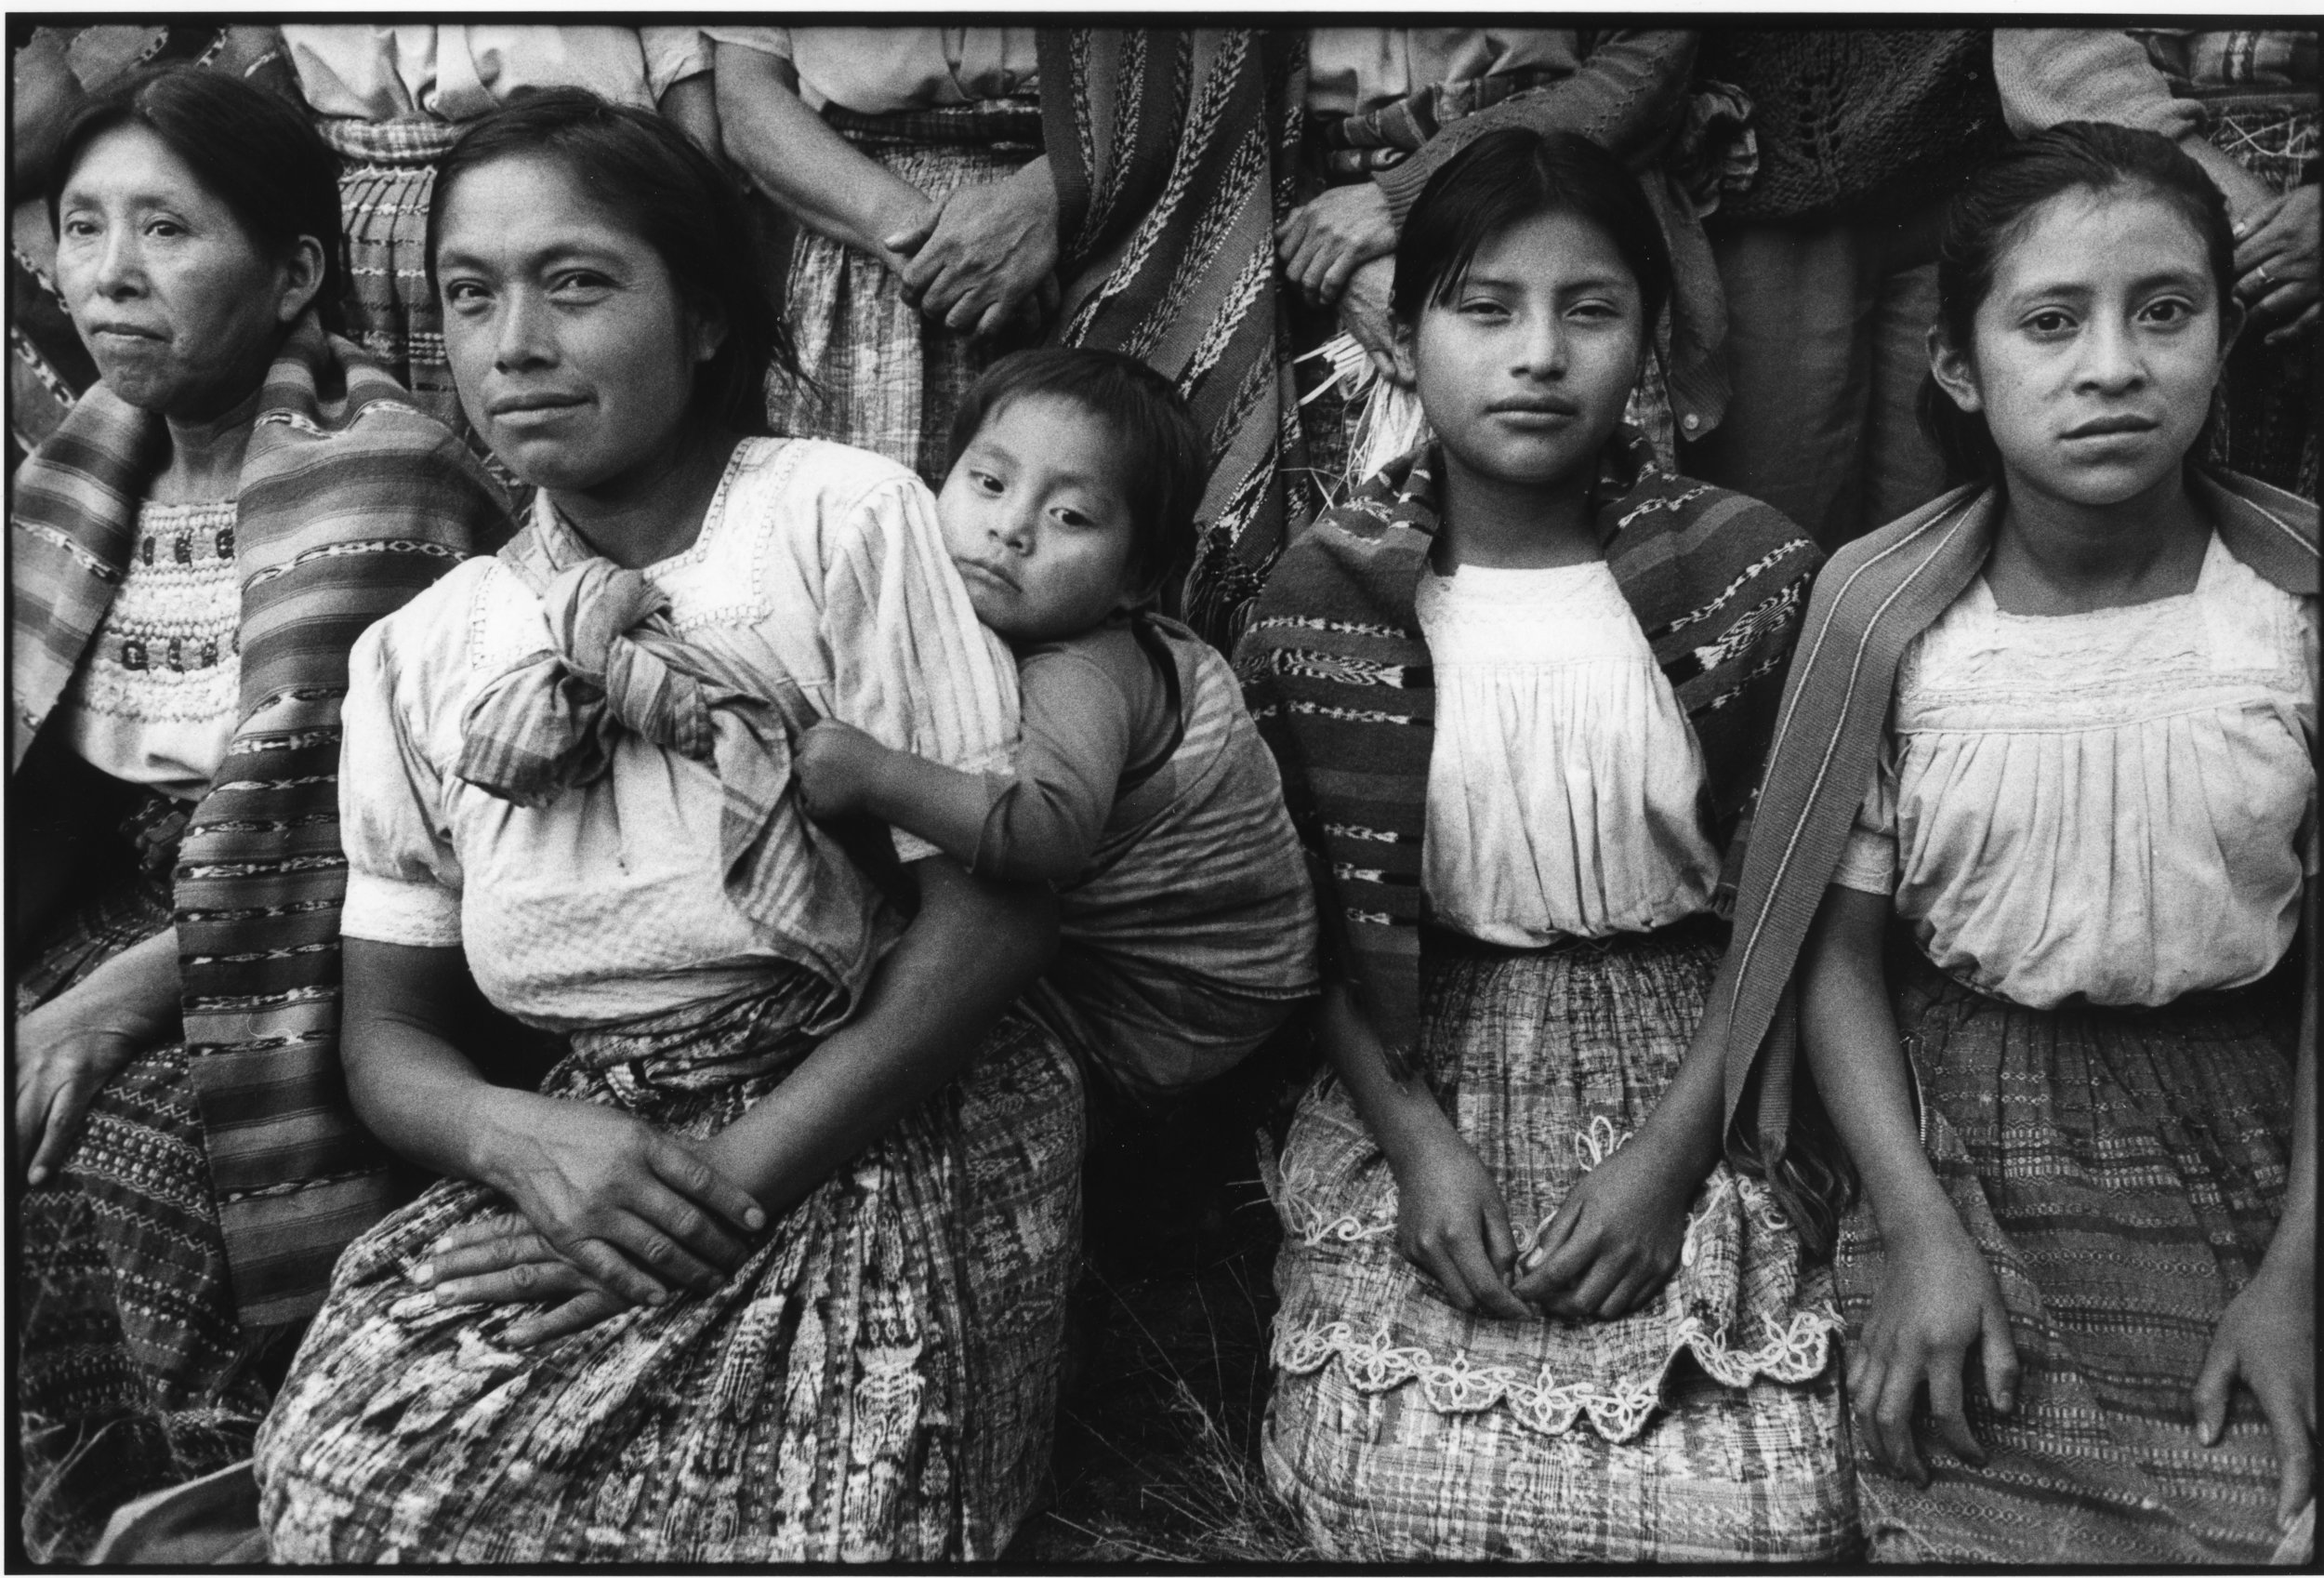 59-Guatemala-Maya Village in the South-1988.jpg